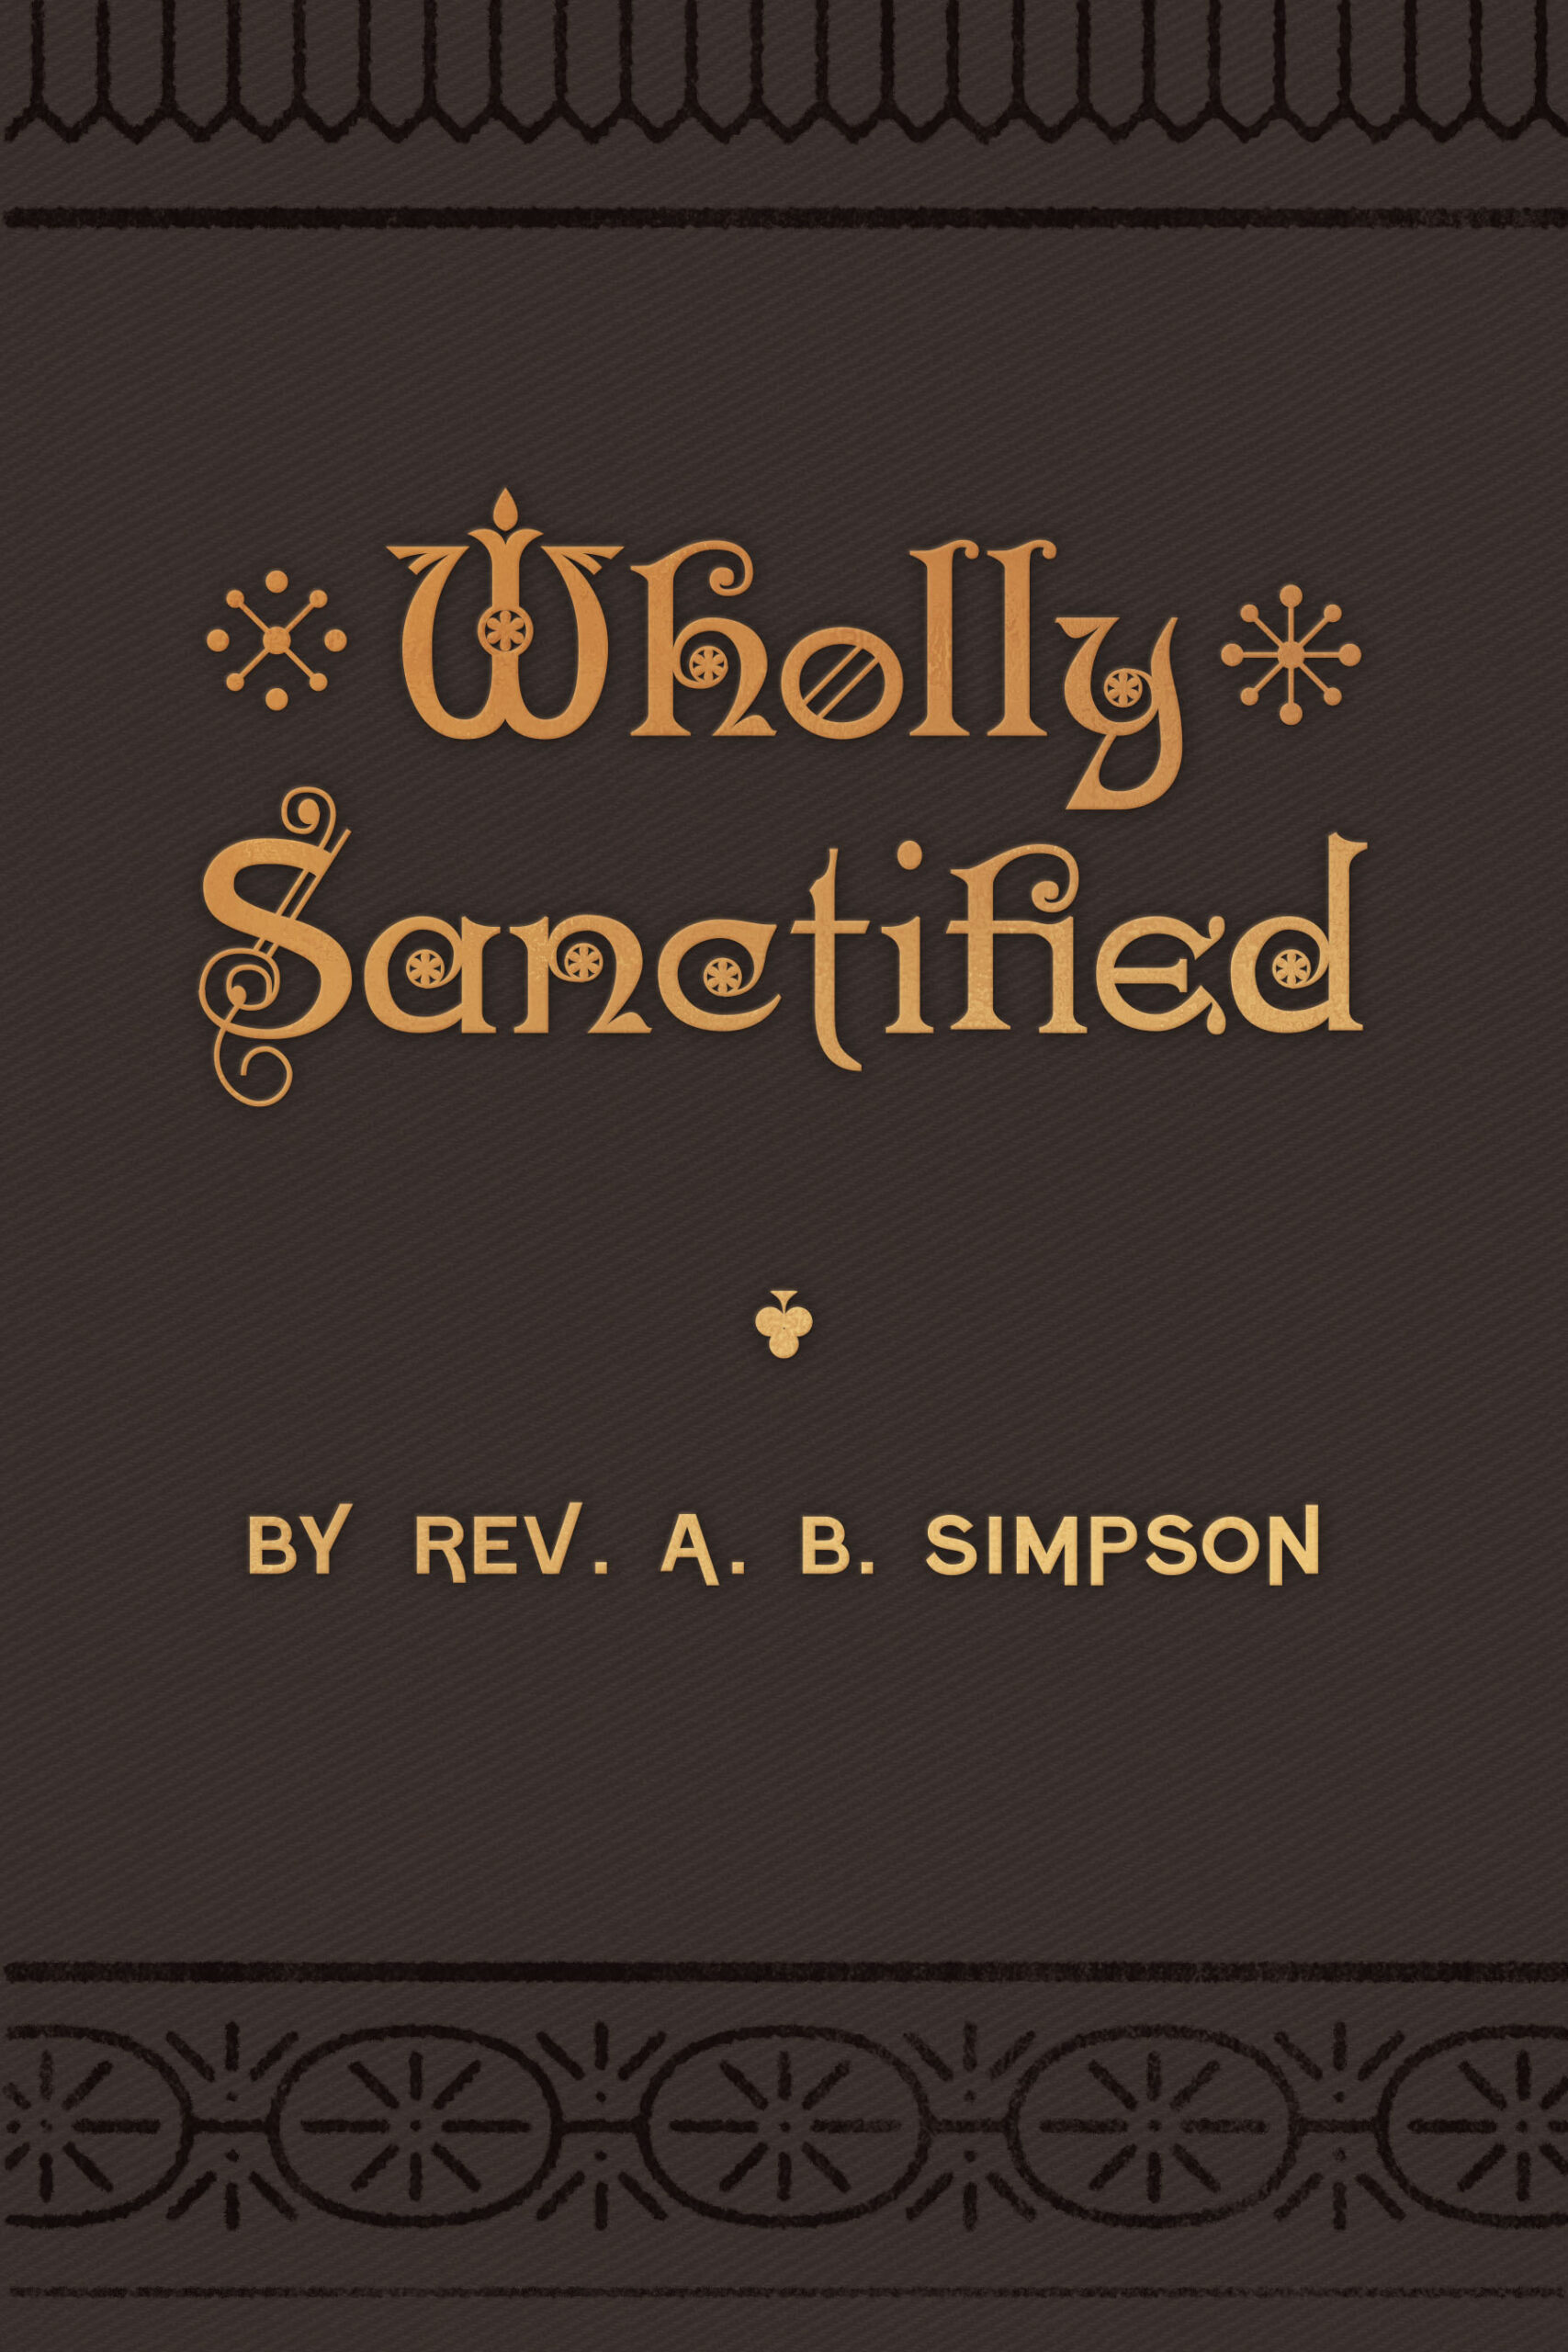 Restored Wholly Sanctified Cover Design